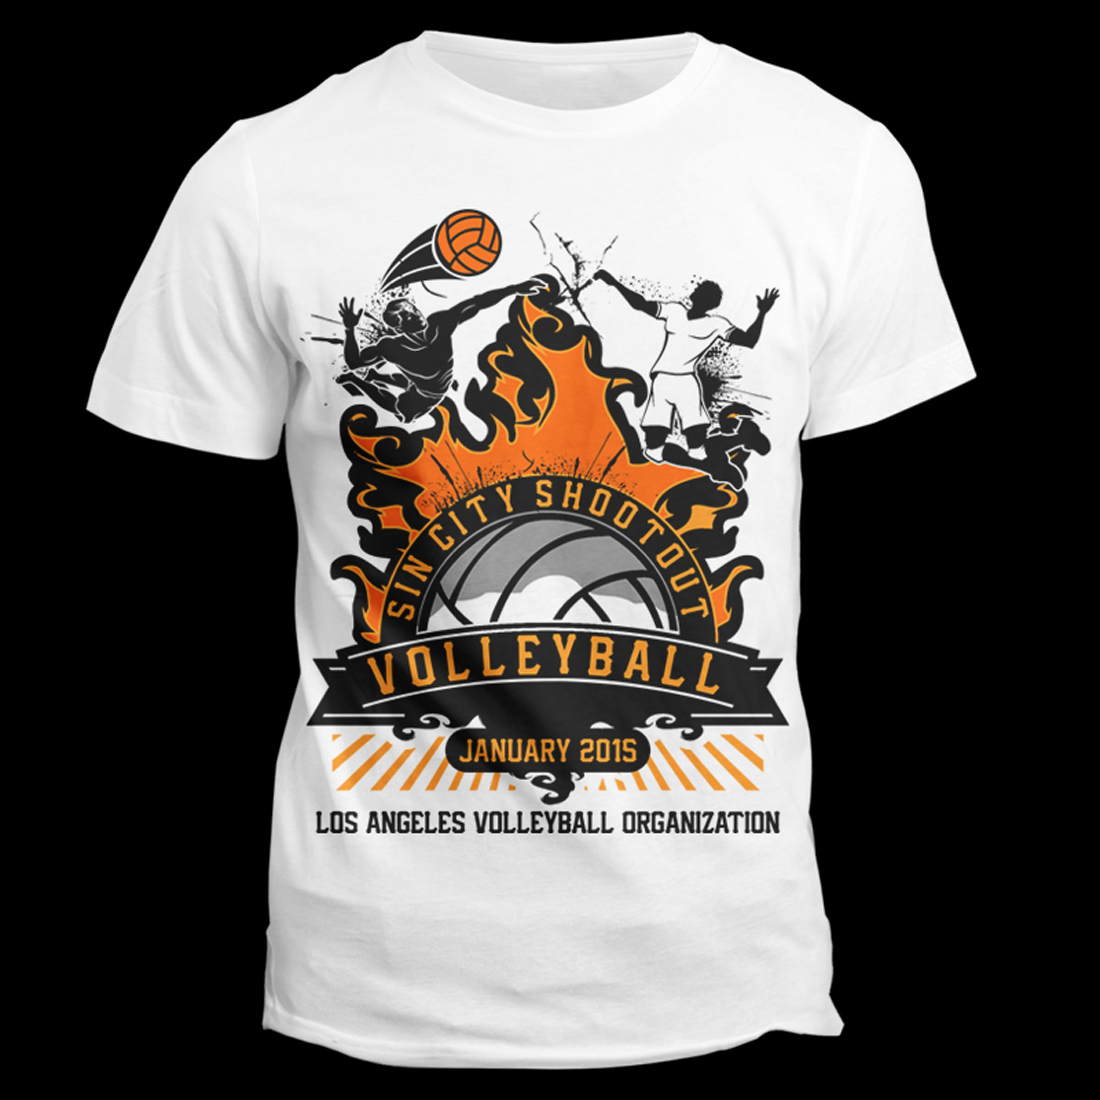 modern bold t shirt design design for los angeles volleyball organization inc a company in